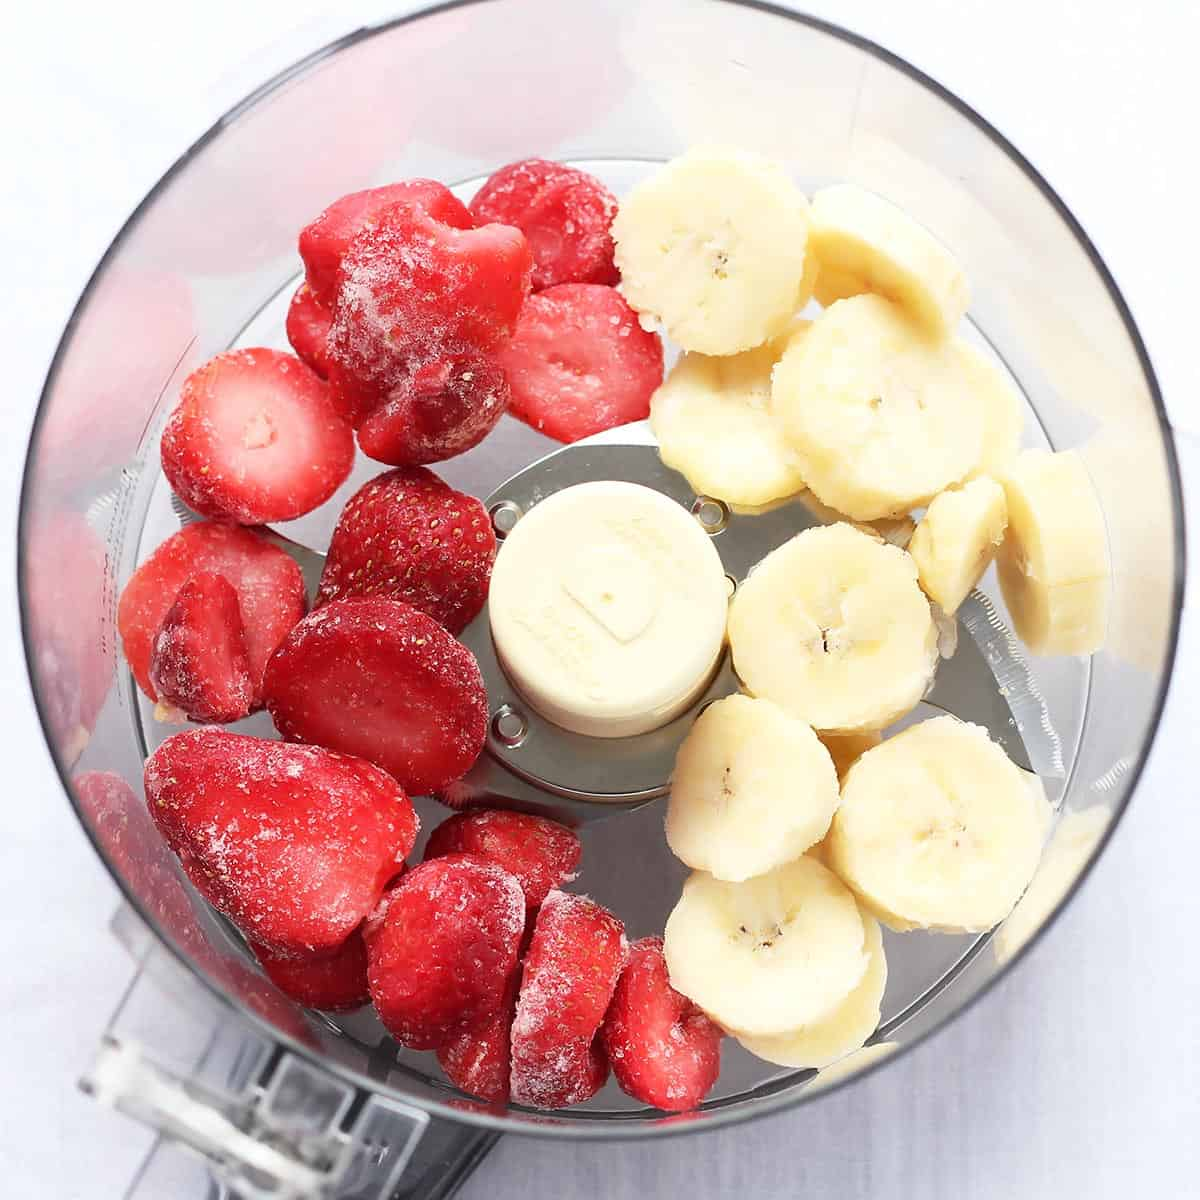 Frozen strawberries and banana slices in food processor